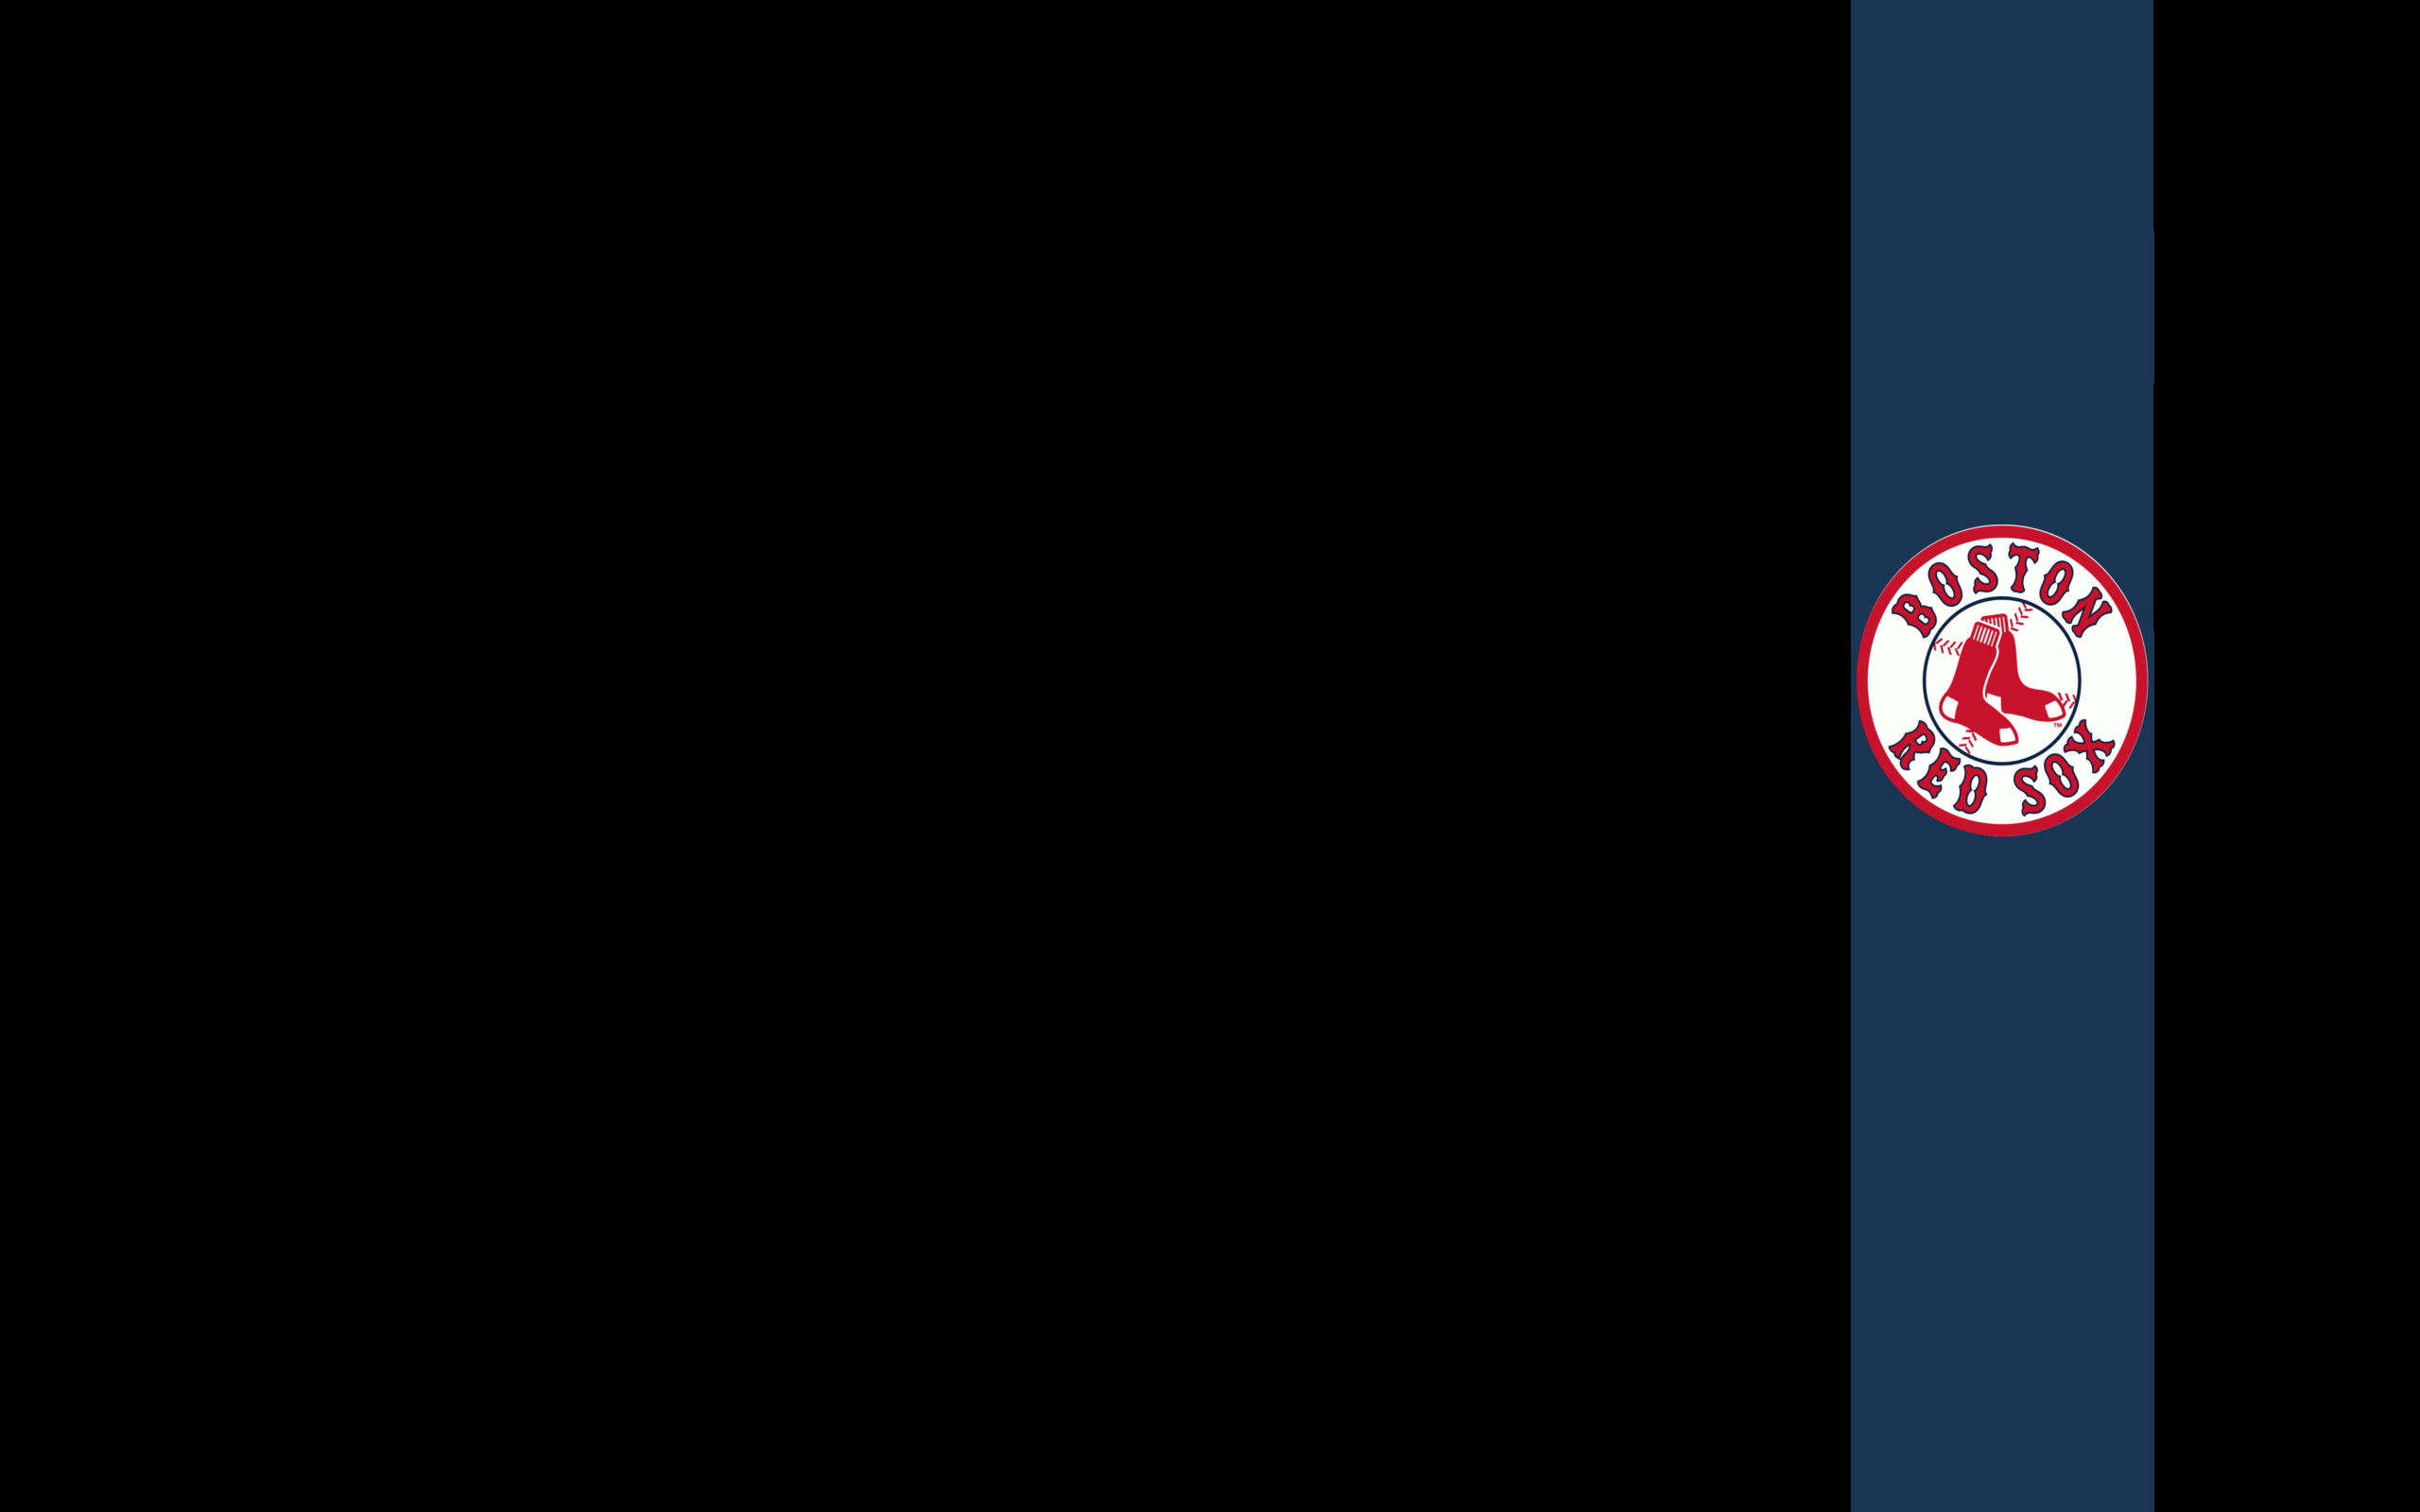 2560x1600 - Boston Red Sox Wallpaper Screensavers 10